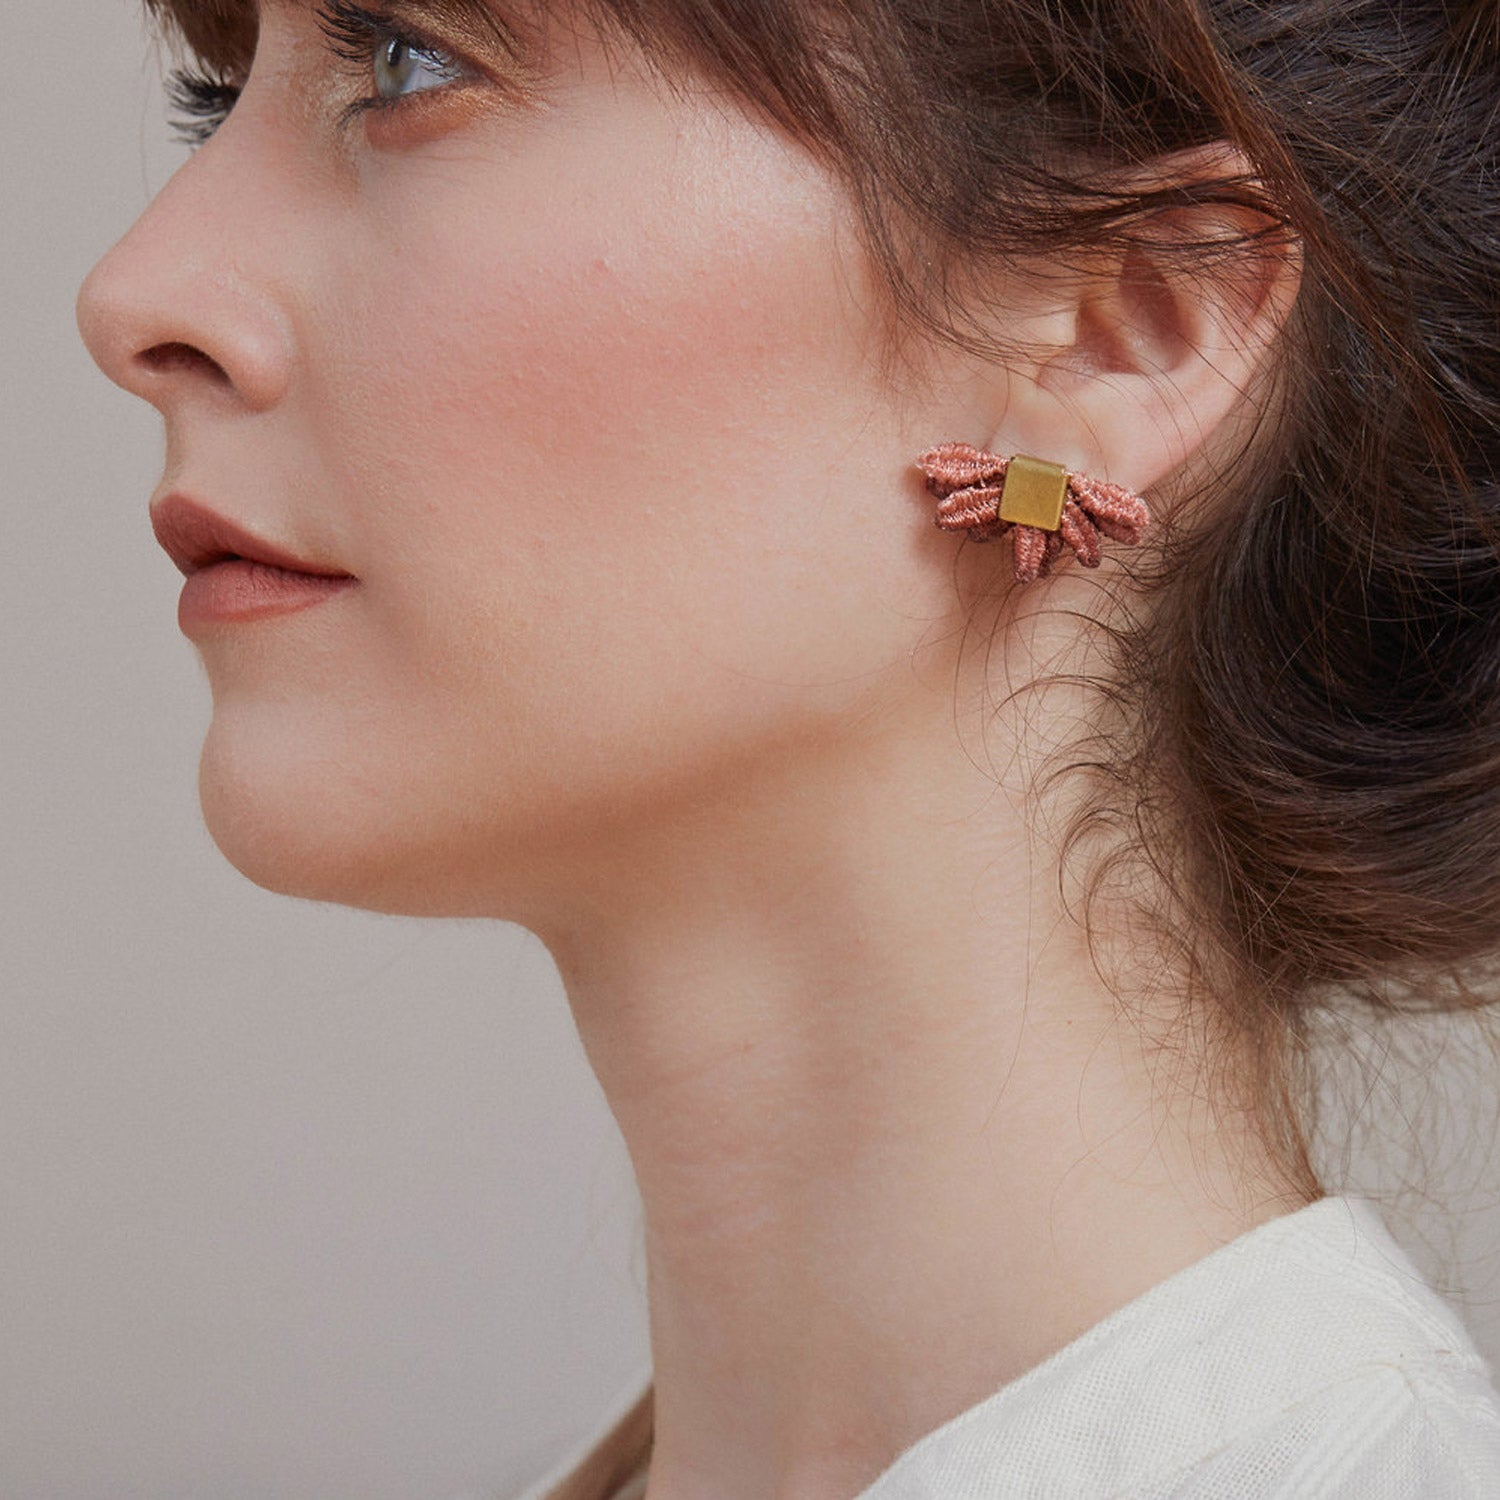 Model Wearing a Larrea - Hand Dyed Lace & Brass Stud Earrings - Sold by CHic & Basta